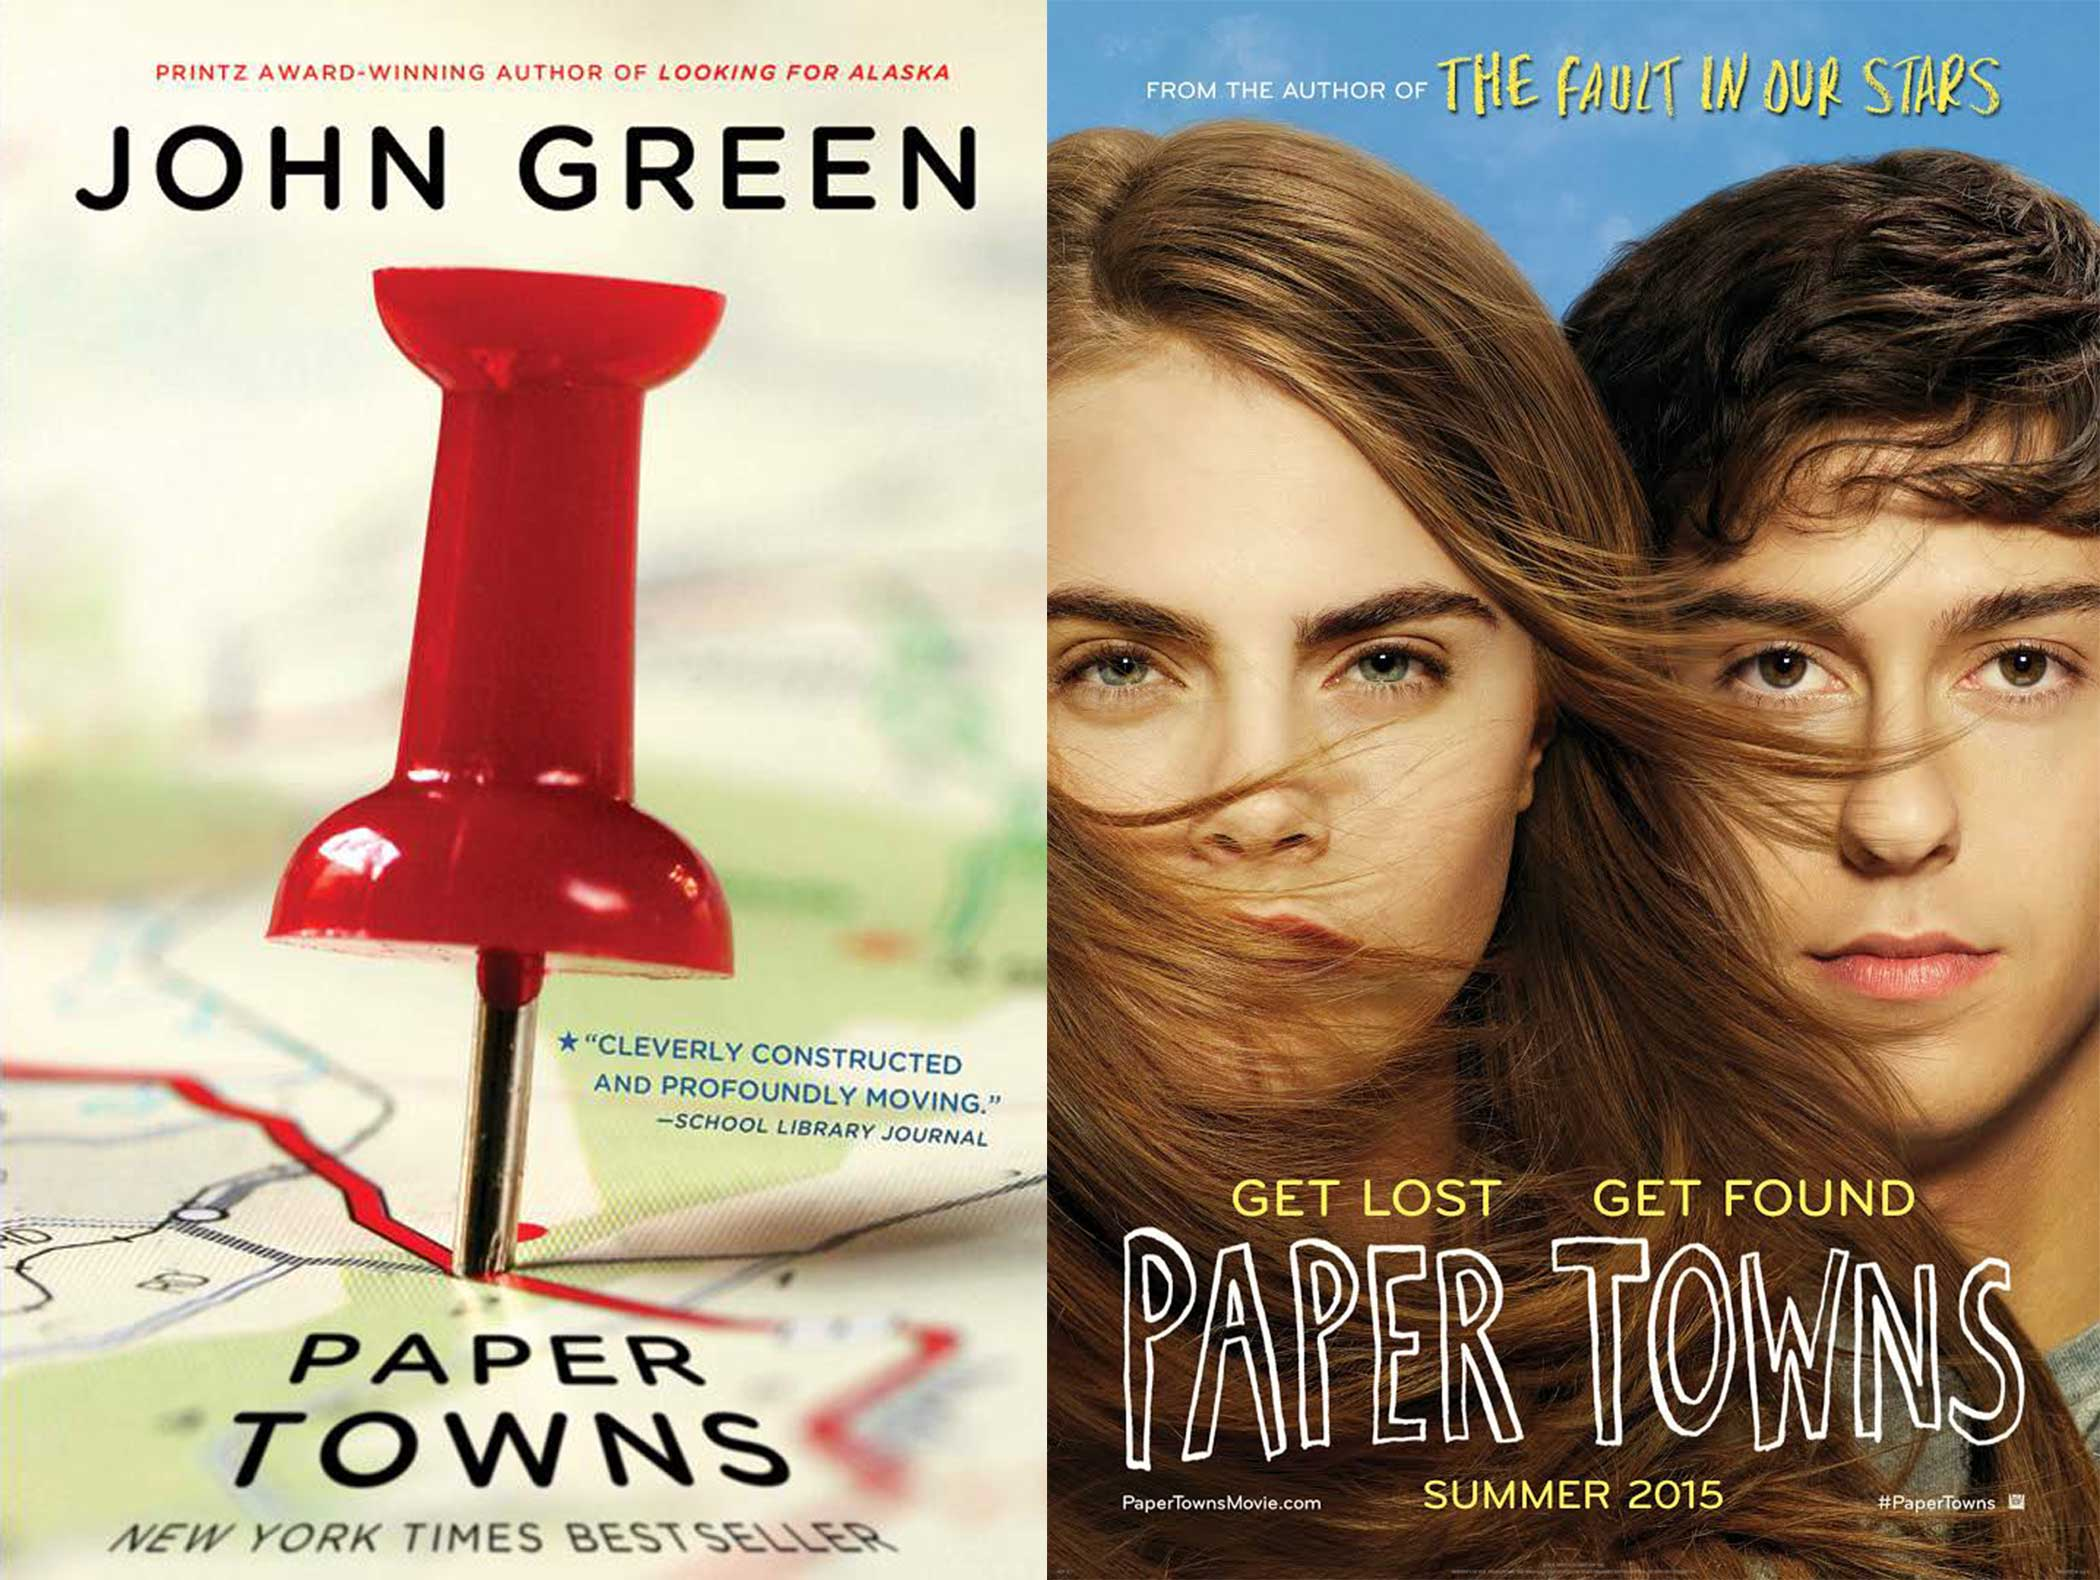 Paper Towns book and movie